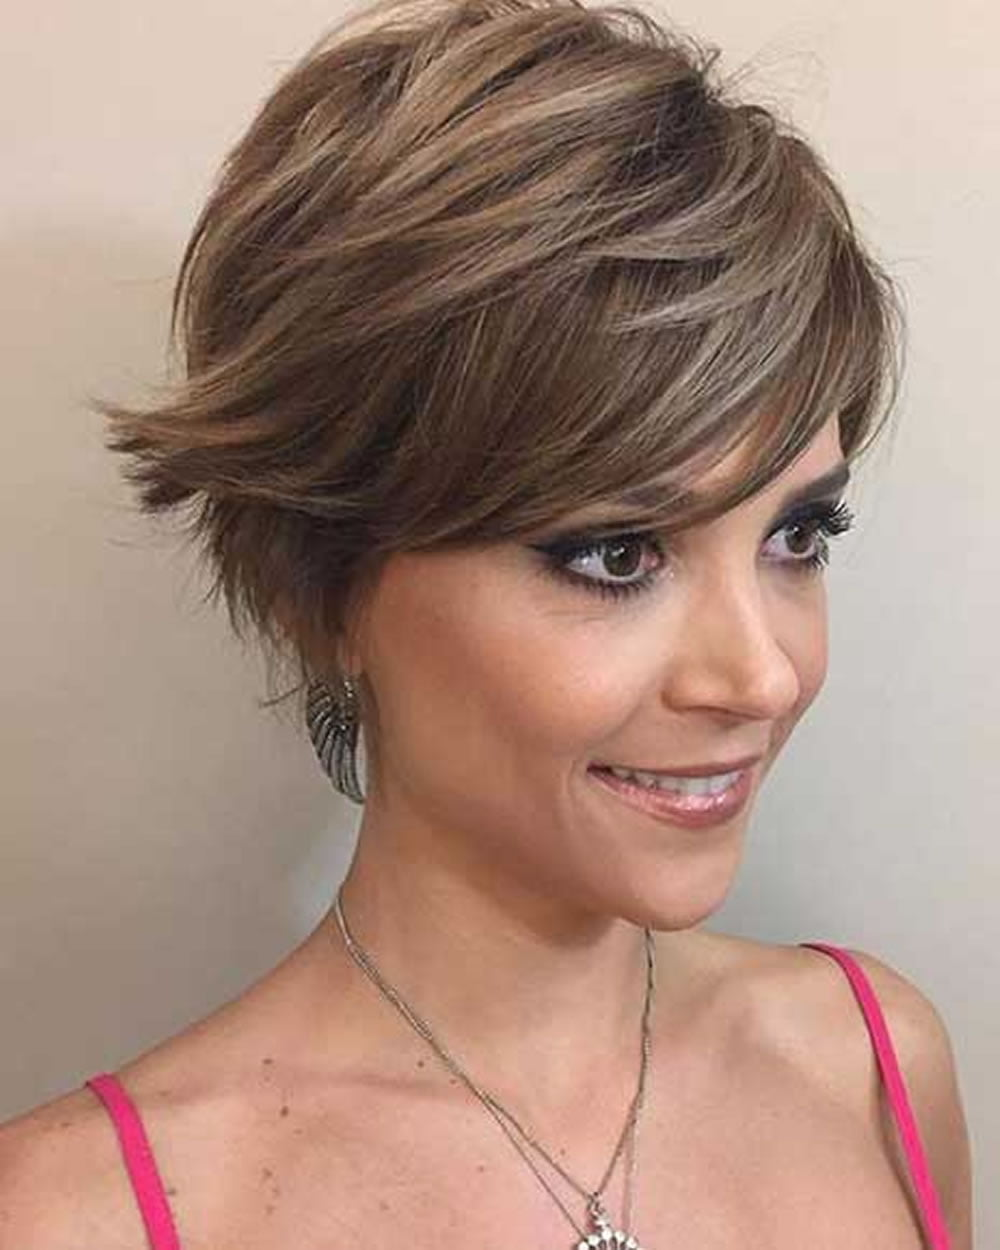 Short Curly Hairstyles for Women: Blonde Hair Short Curly Hairstyles for Women: Blonde Hair new photo